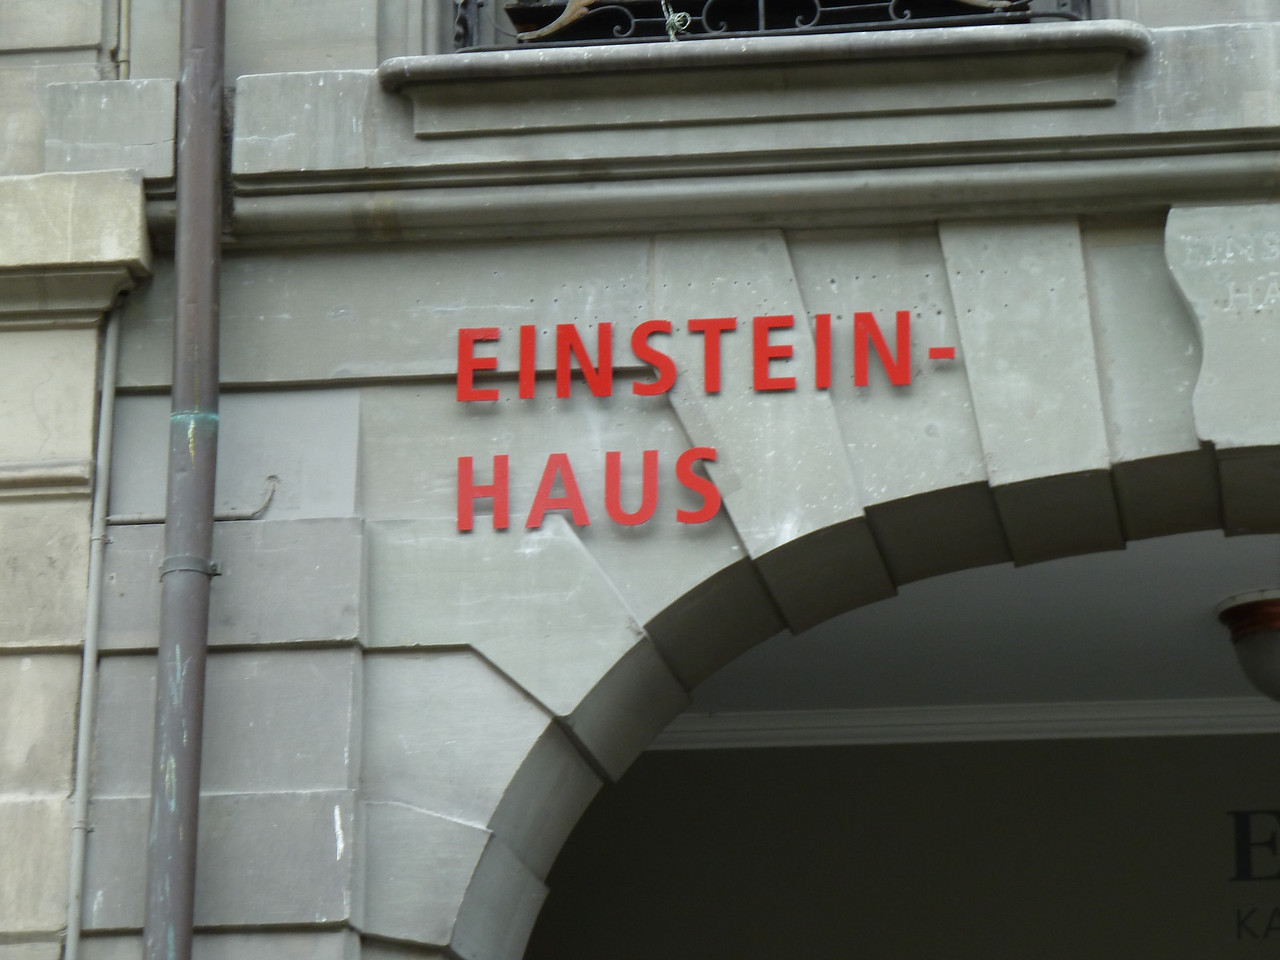 Einstein supposedly developed his Theory of Relativity while living in Bern.